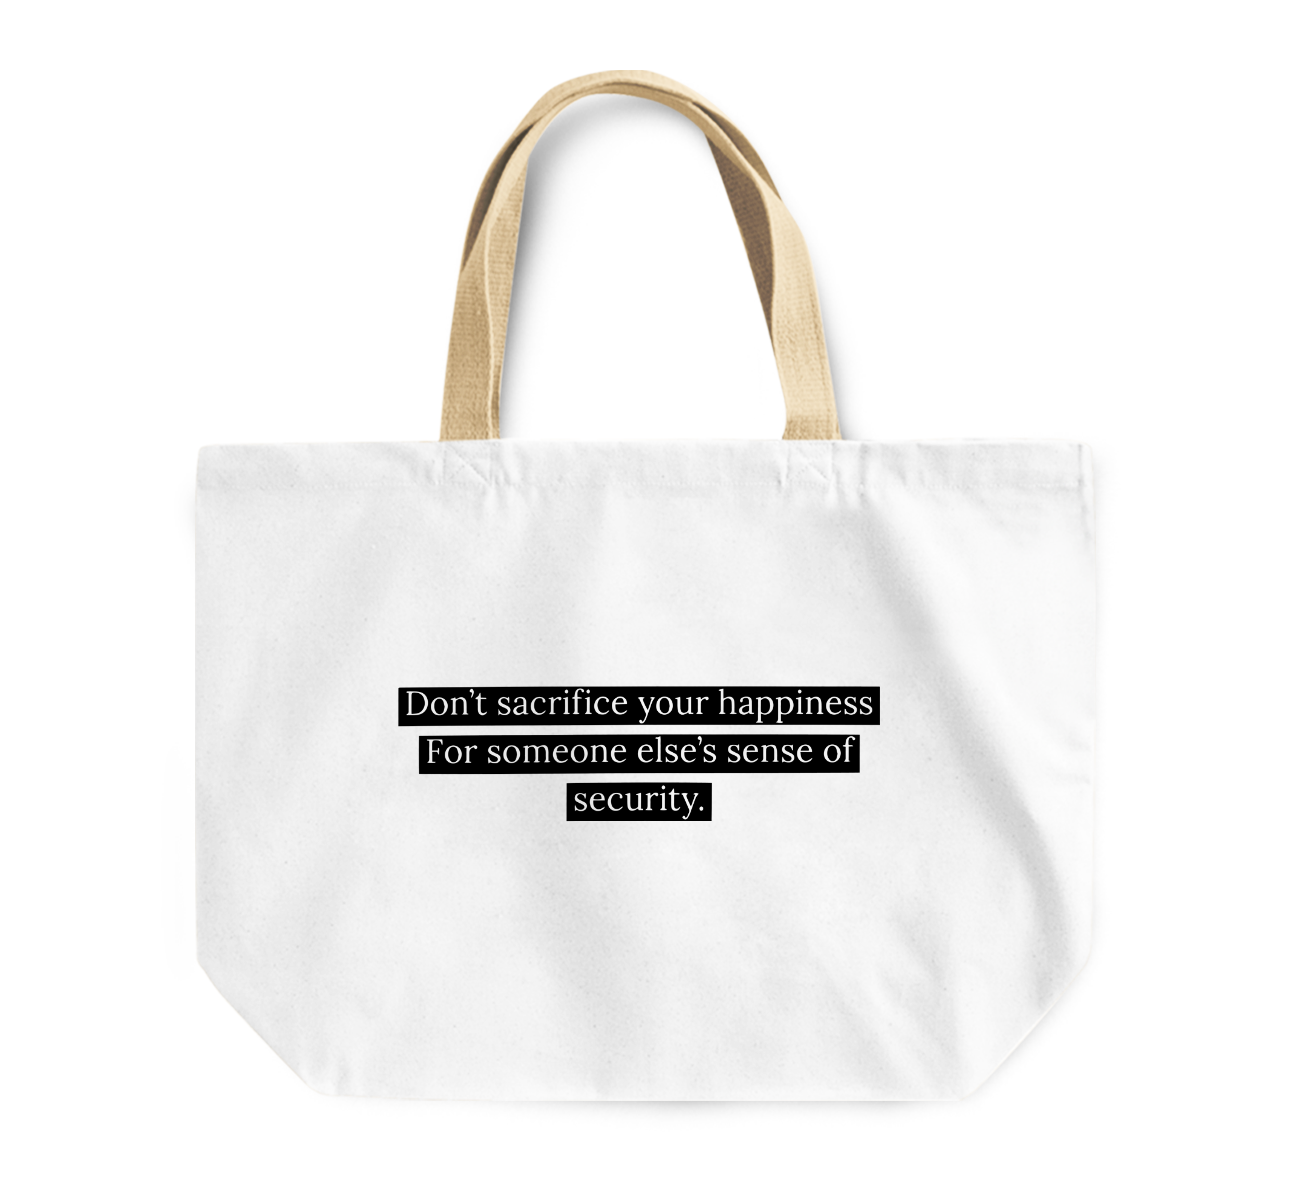 Tote Bag Dont Sacrifice Your Sense Of Happiness Insecurity Motivational Quote Reusable Shopping Bag By Loud Universe